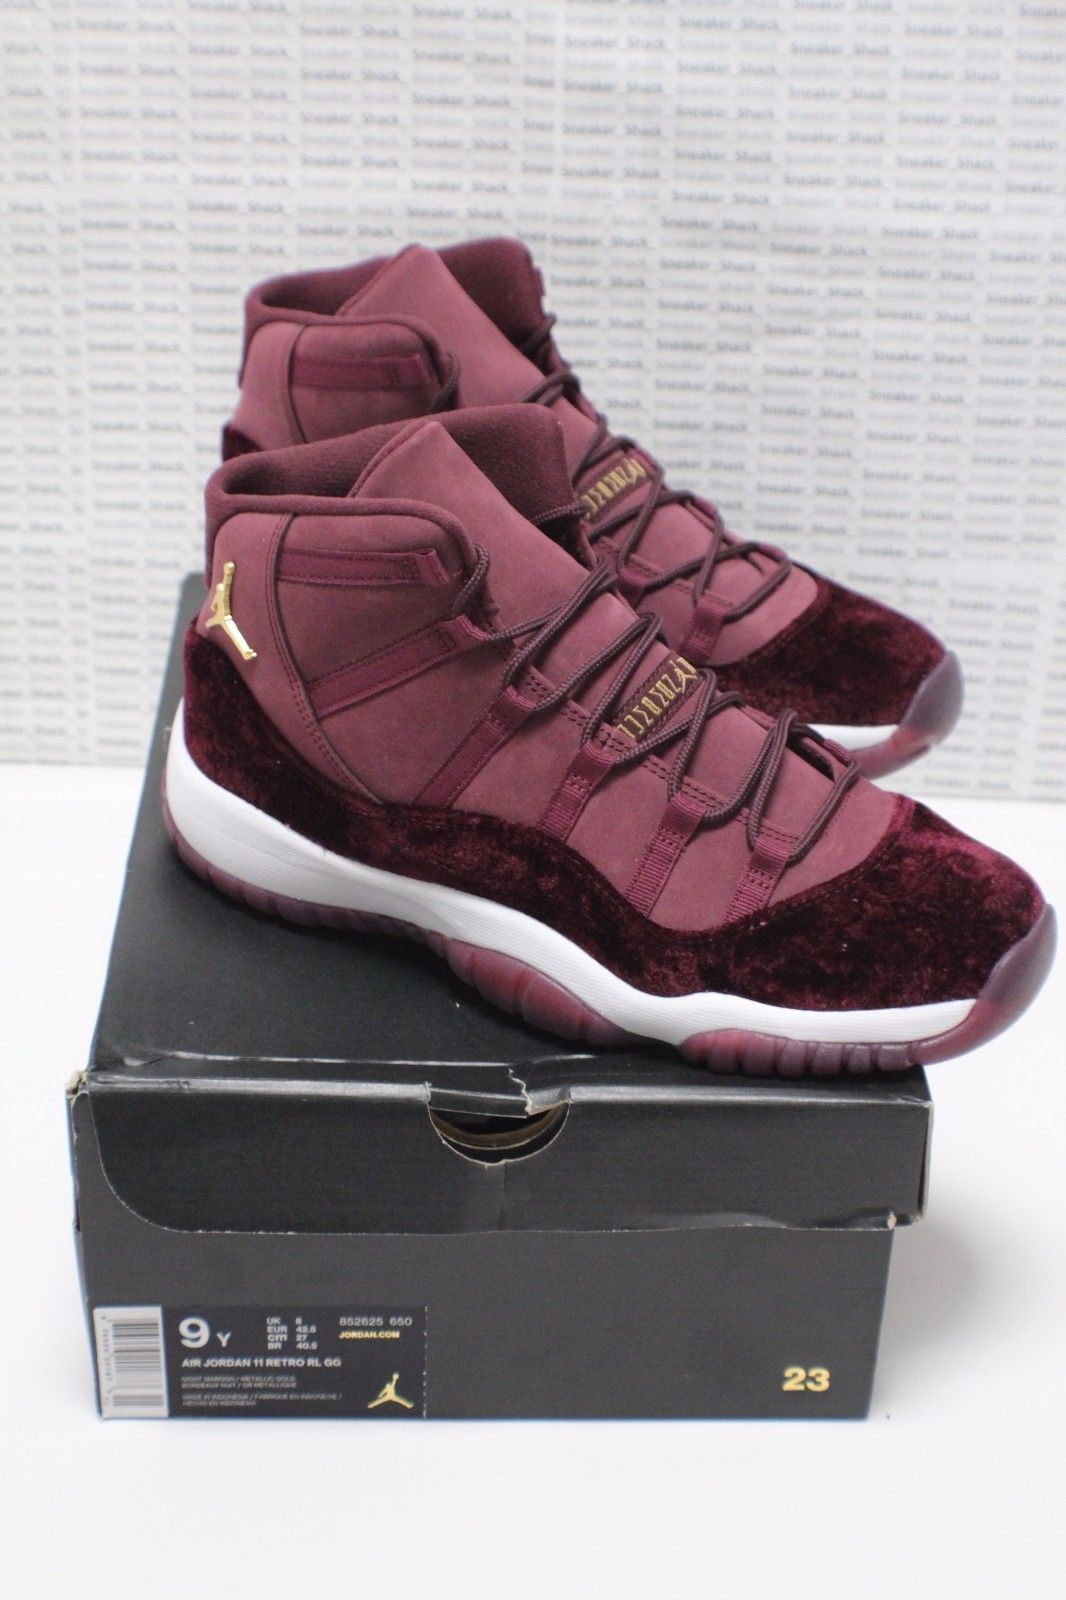 353b7a946ec82d NIKE AIR JORDAN 11 XI RETRO GS HEIRESS SIZE 9 852625-650 MAROON RED VELVET